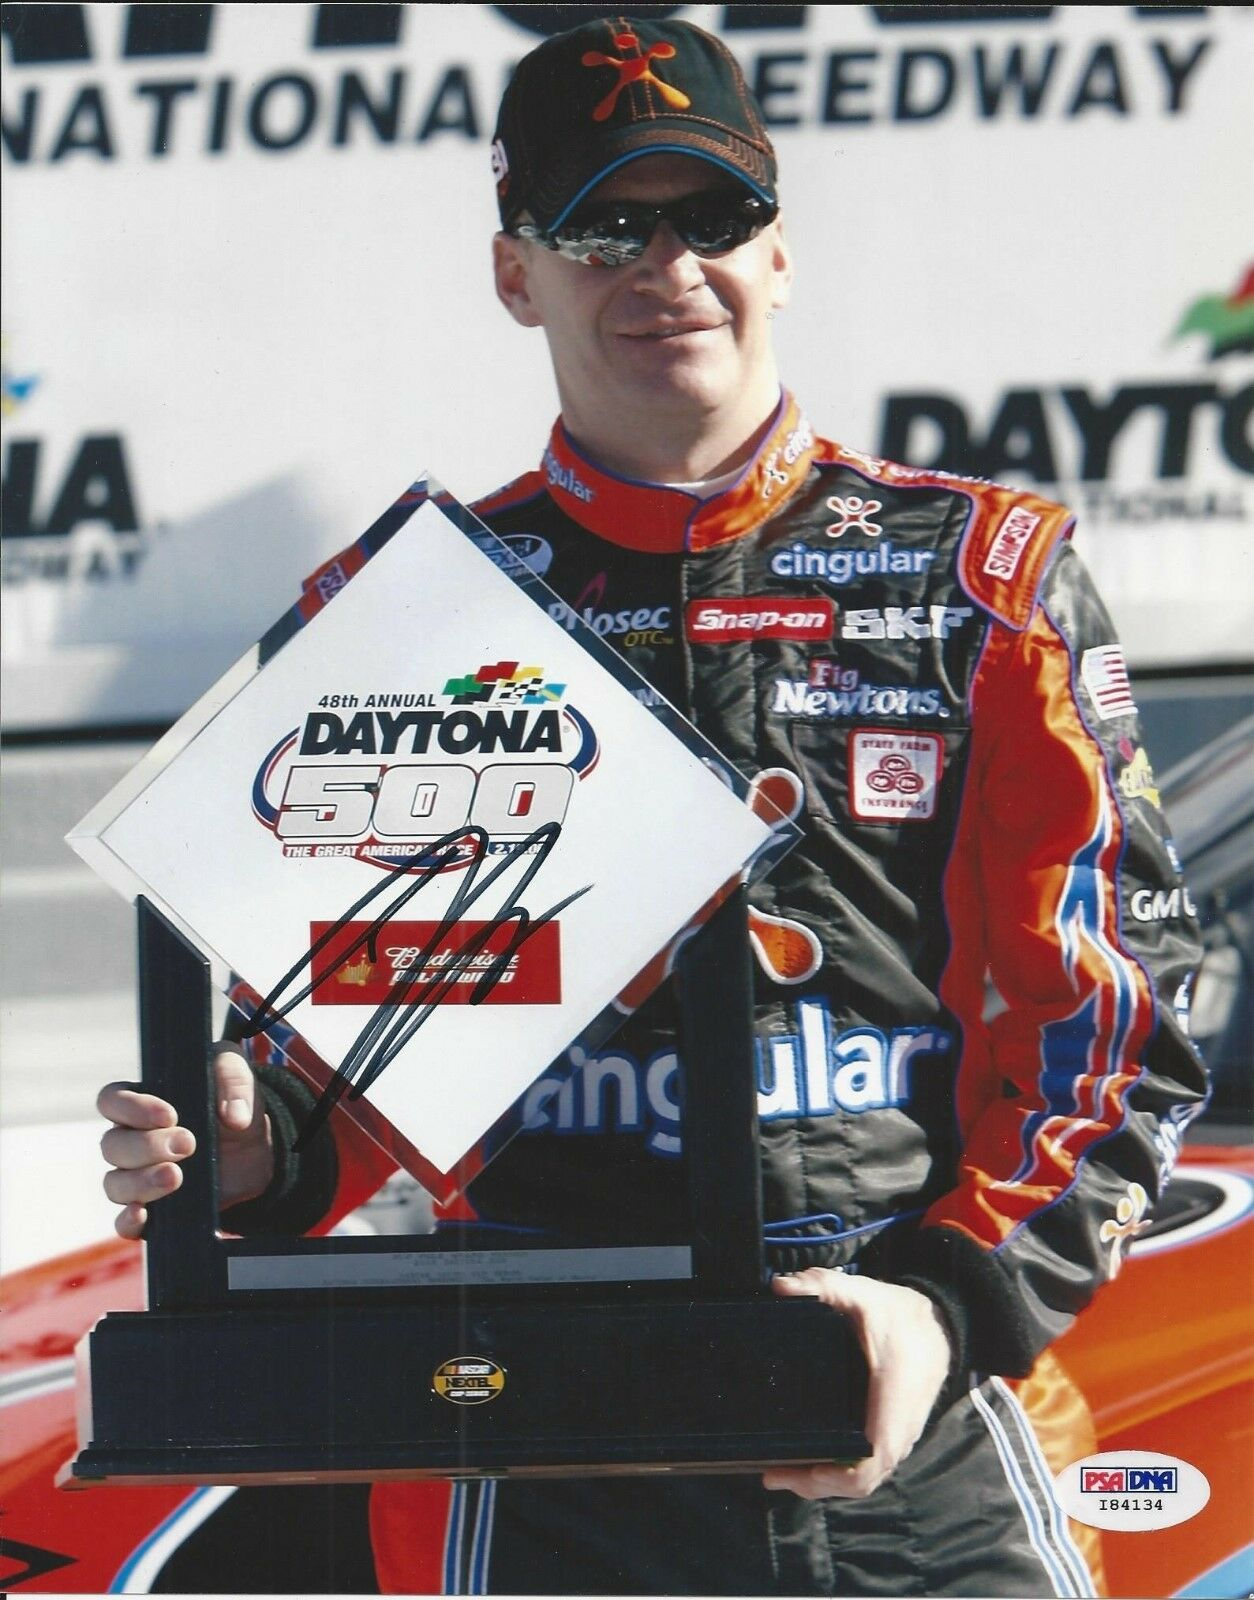 Jeff Burton Signed Nascar 8x10 Photo PSA/DNA # I84134